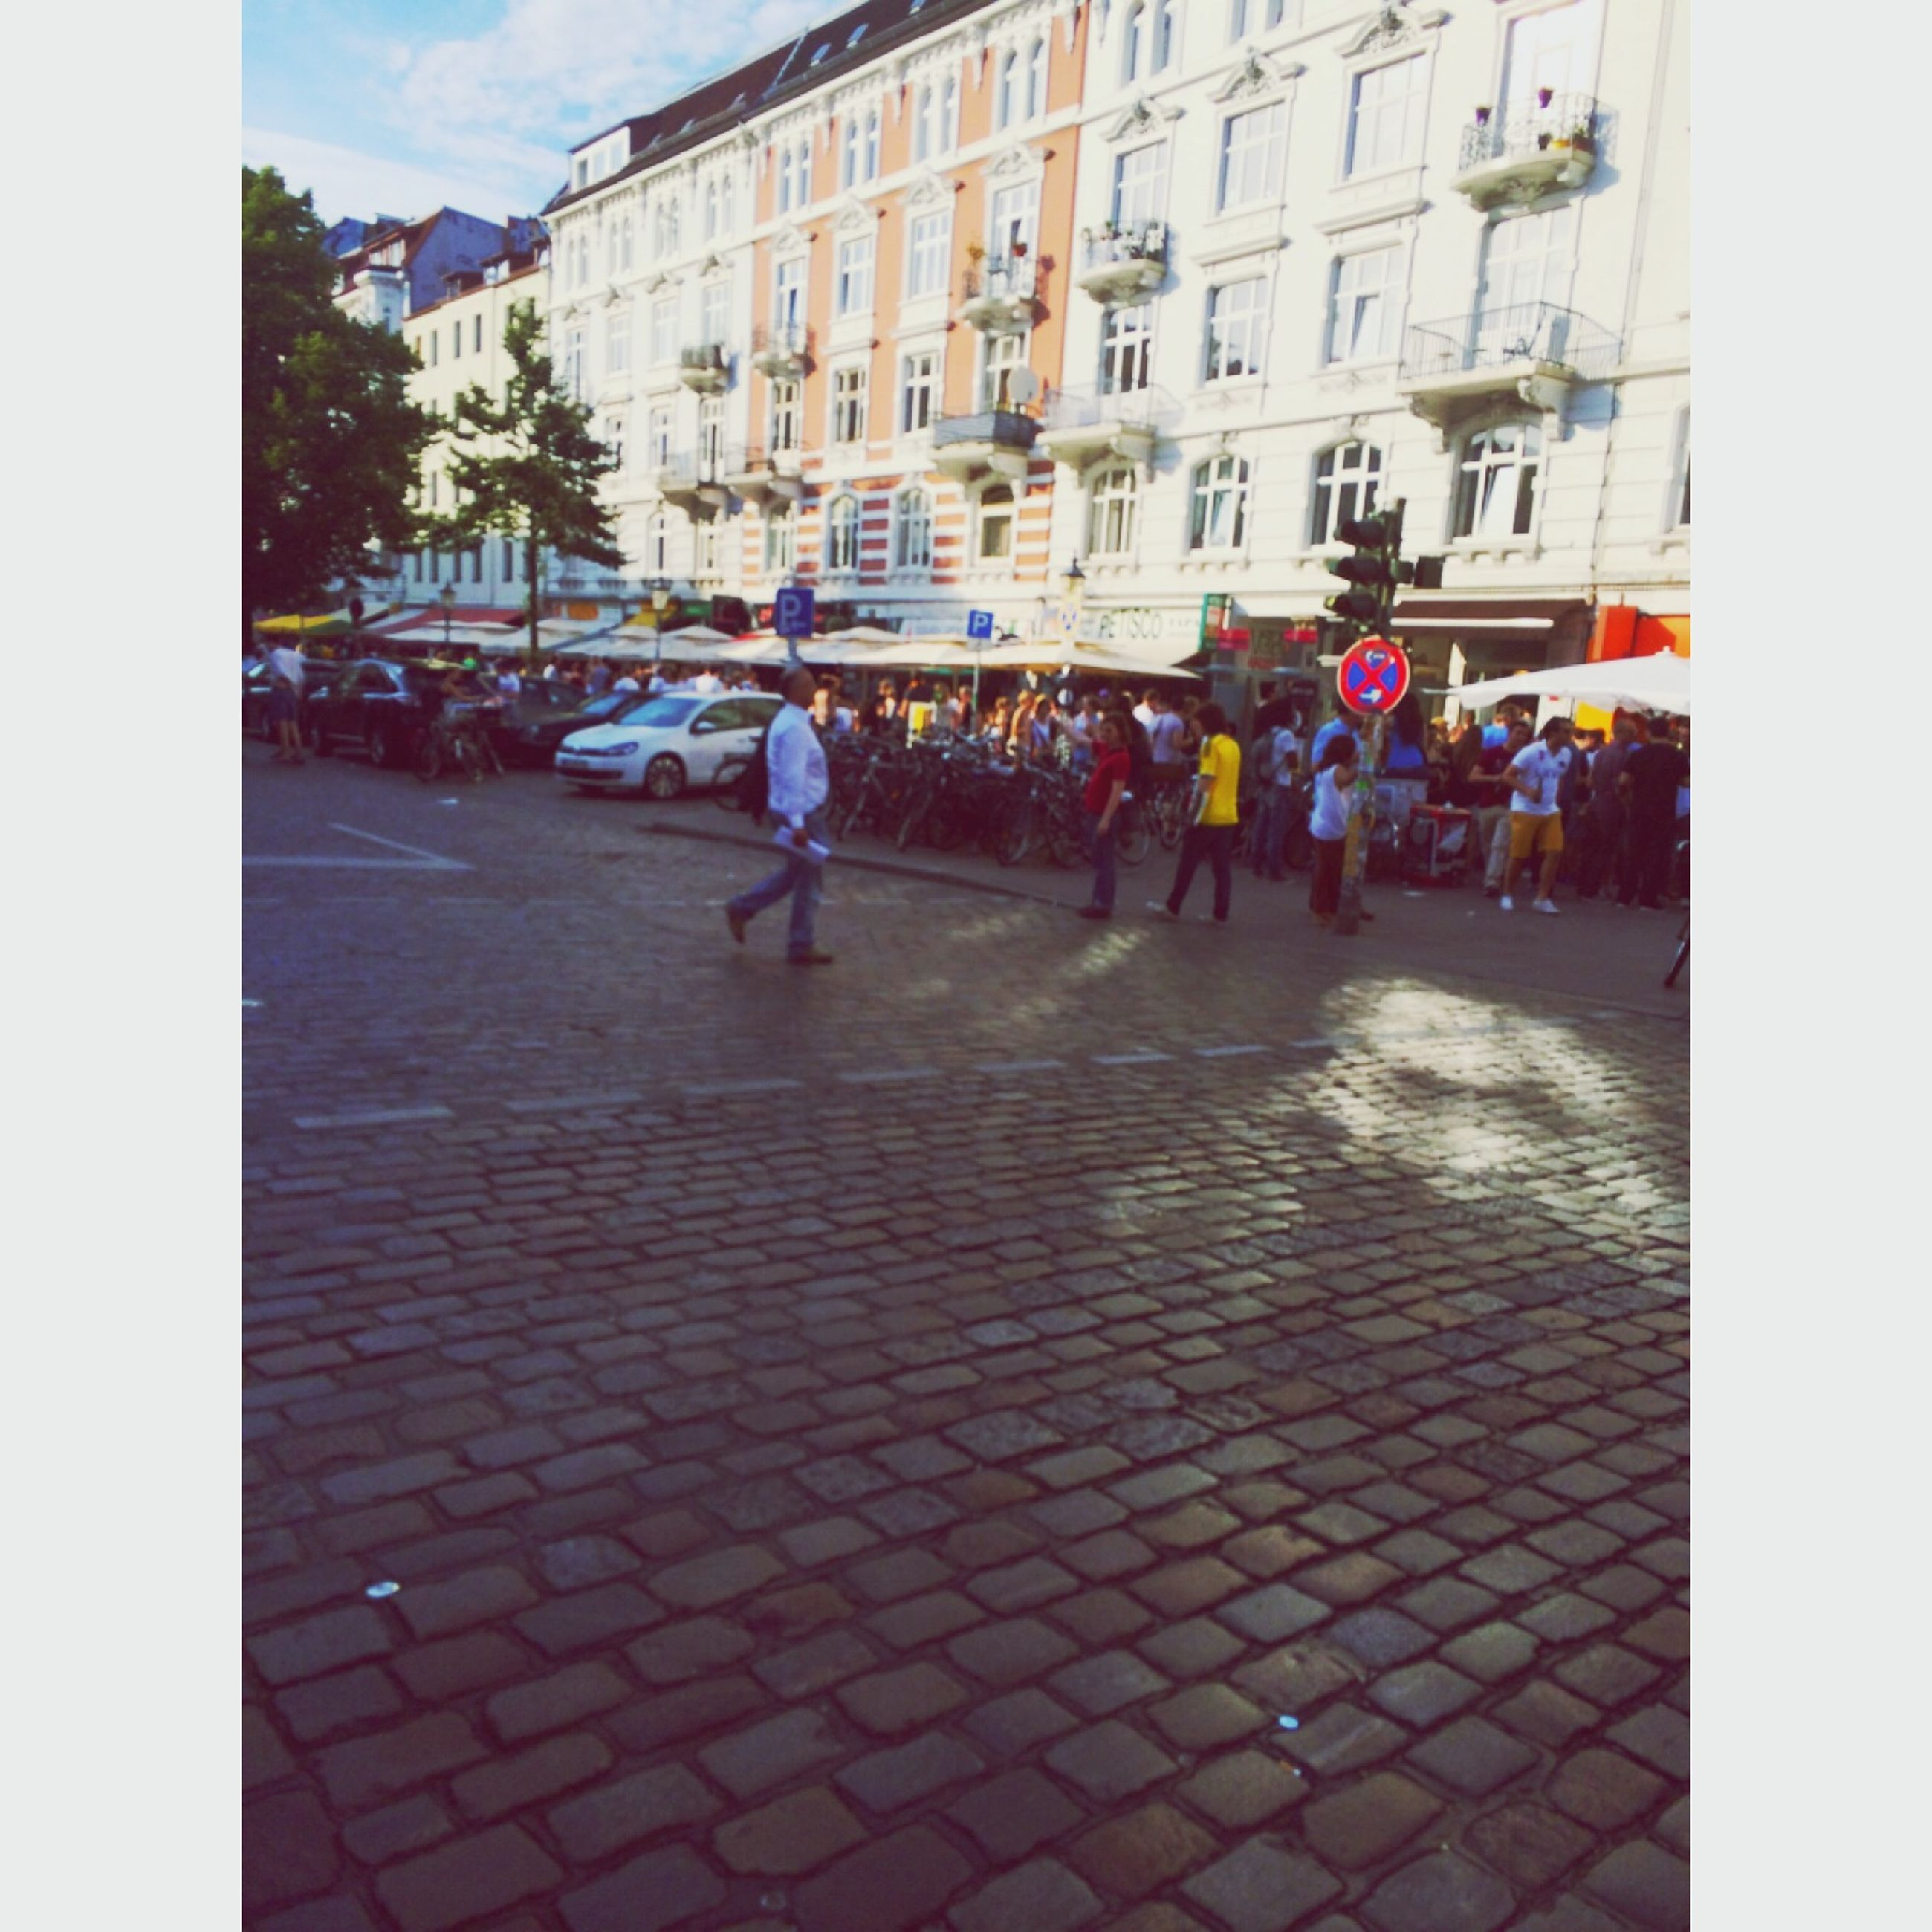 building exterior, architecture, transfer print, built structure, street, city, walking, men, lifestyles, person, city life, auto post production filter, leisure activity, large group of people, full length, cobblestone, rear view, city street, umbrella